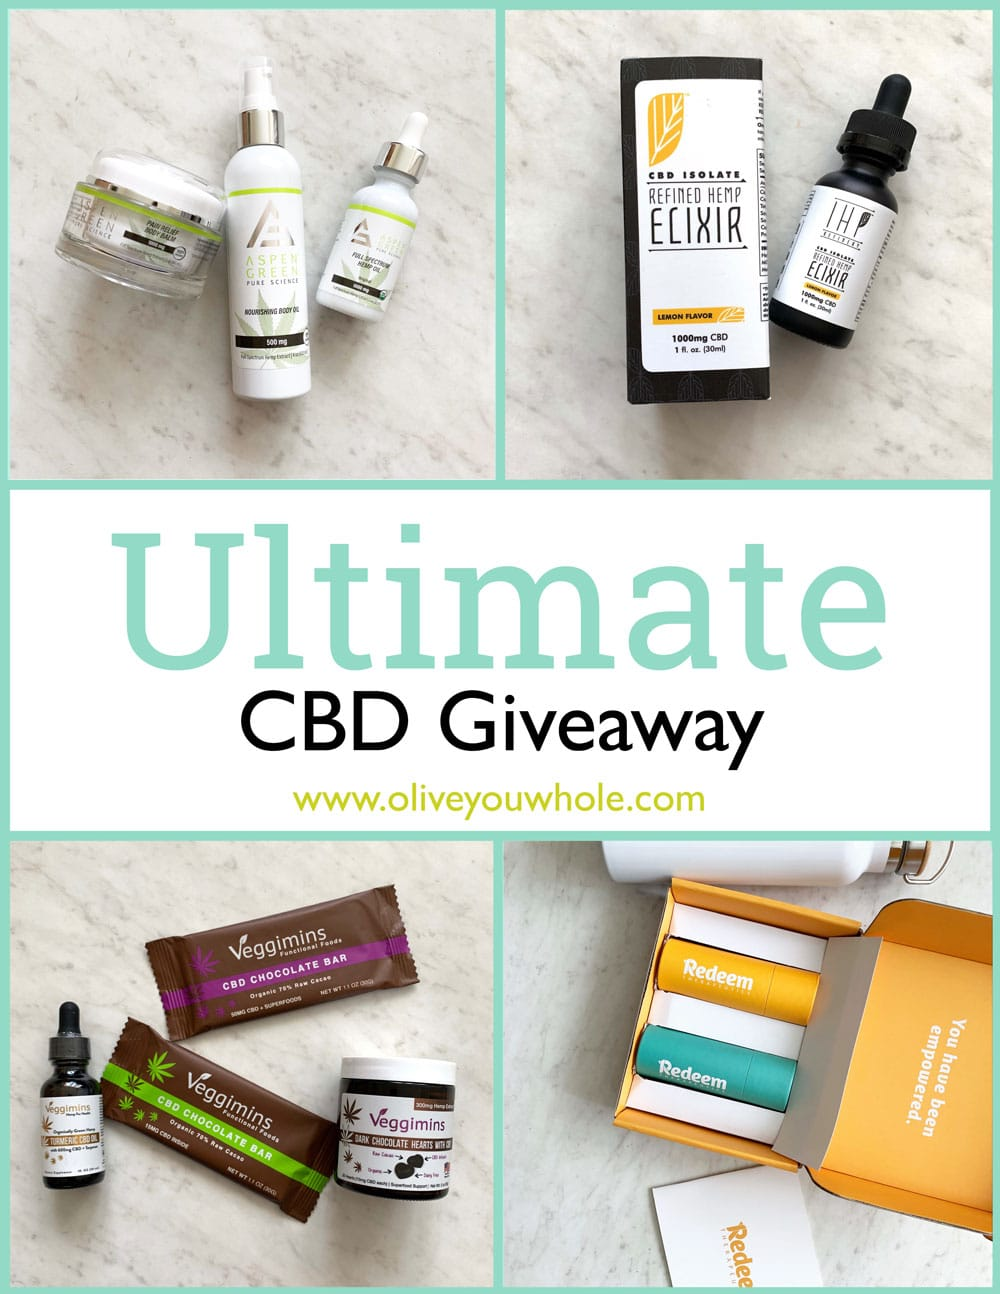 The Ultimate CBD Giveaway